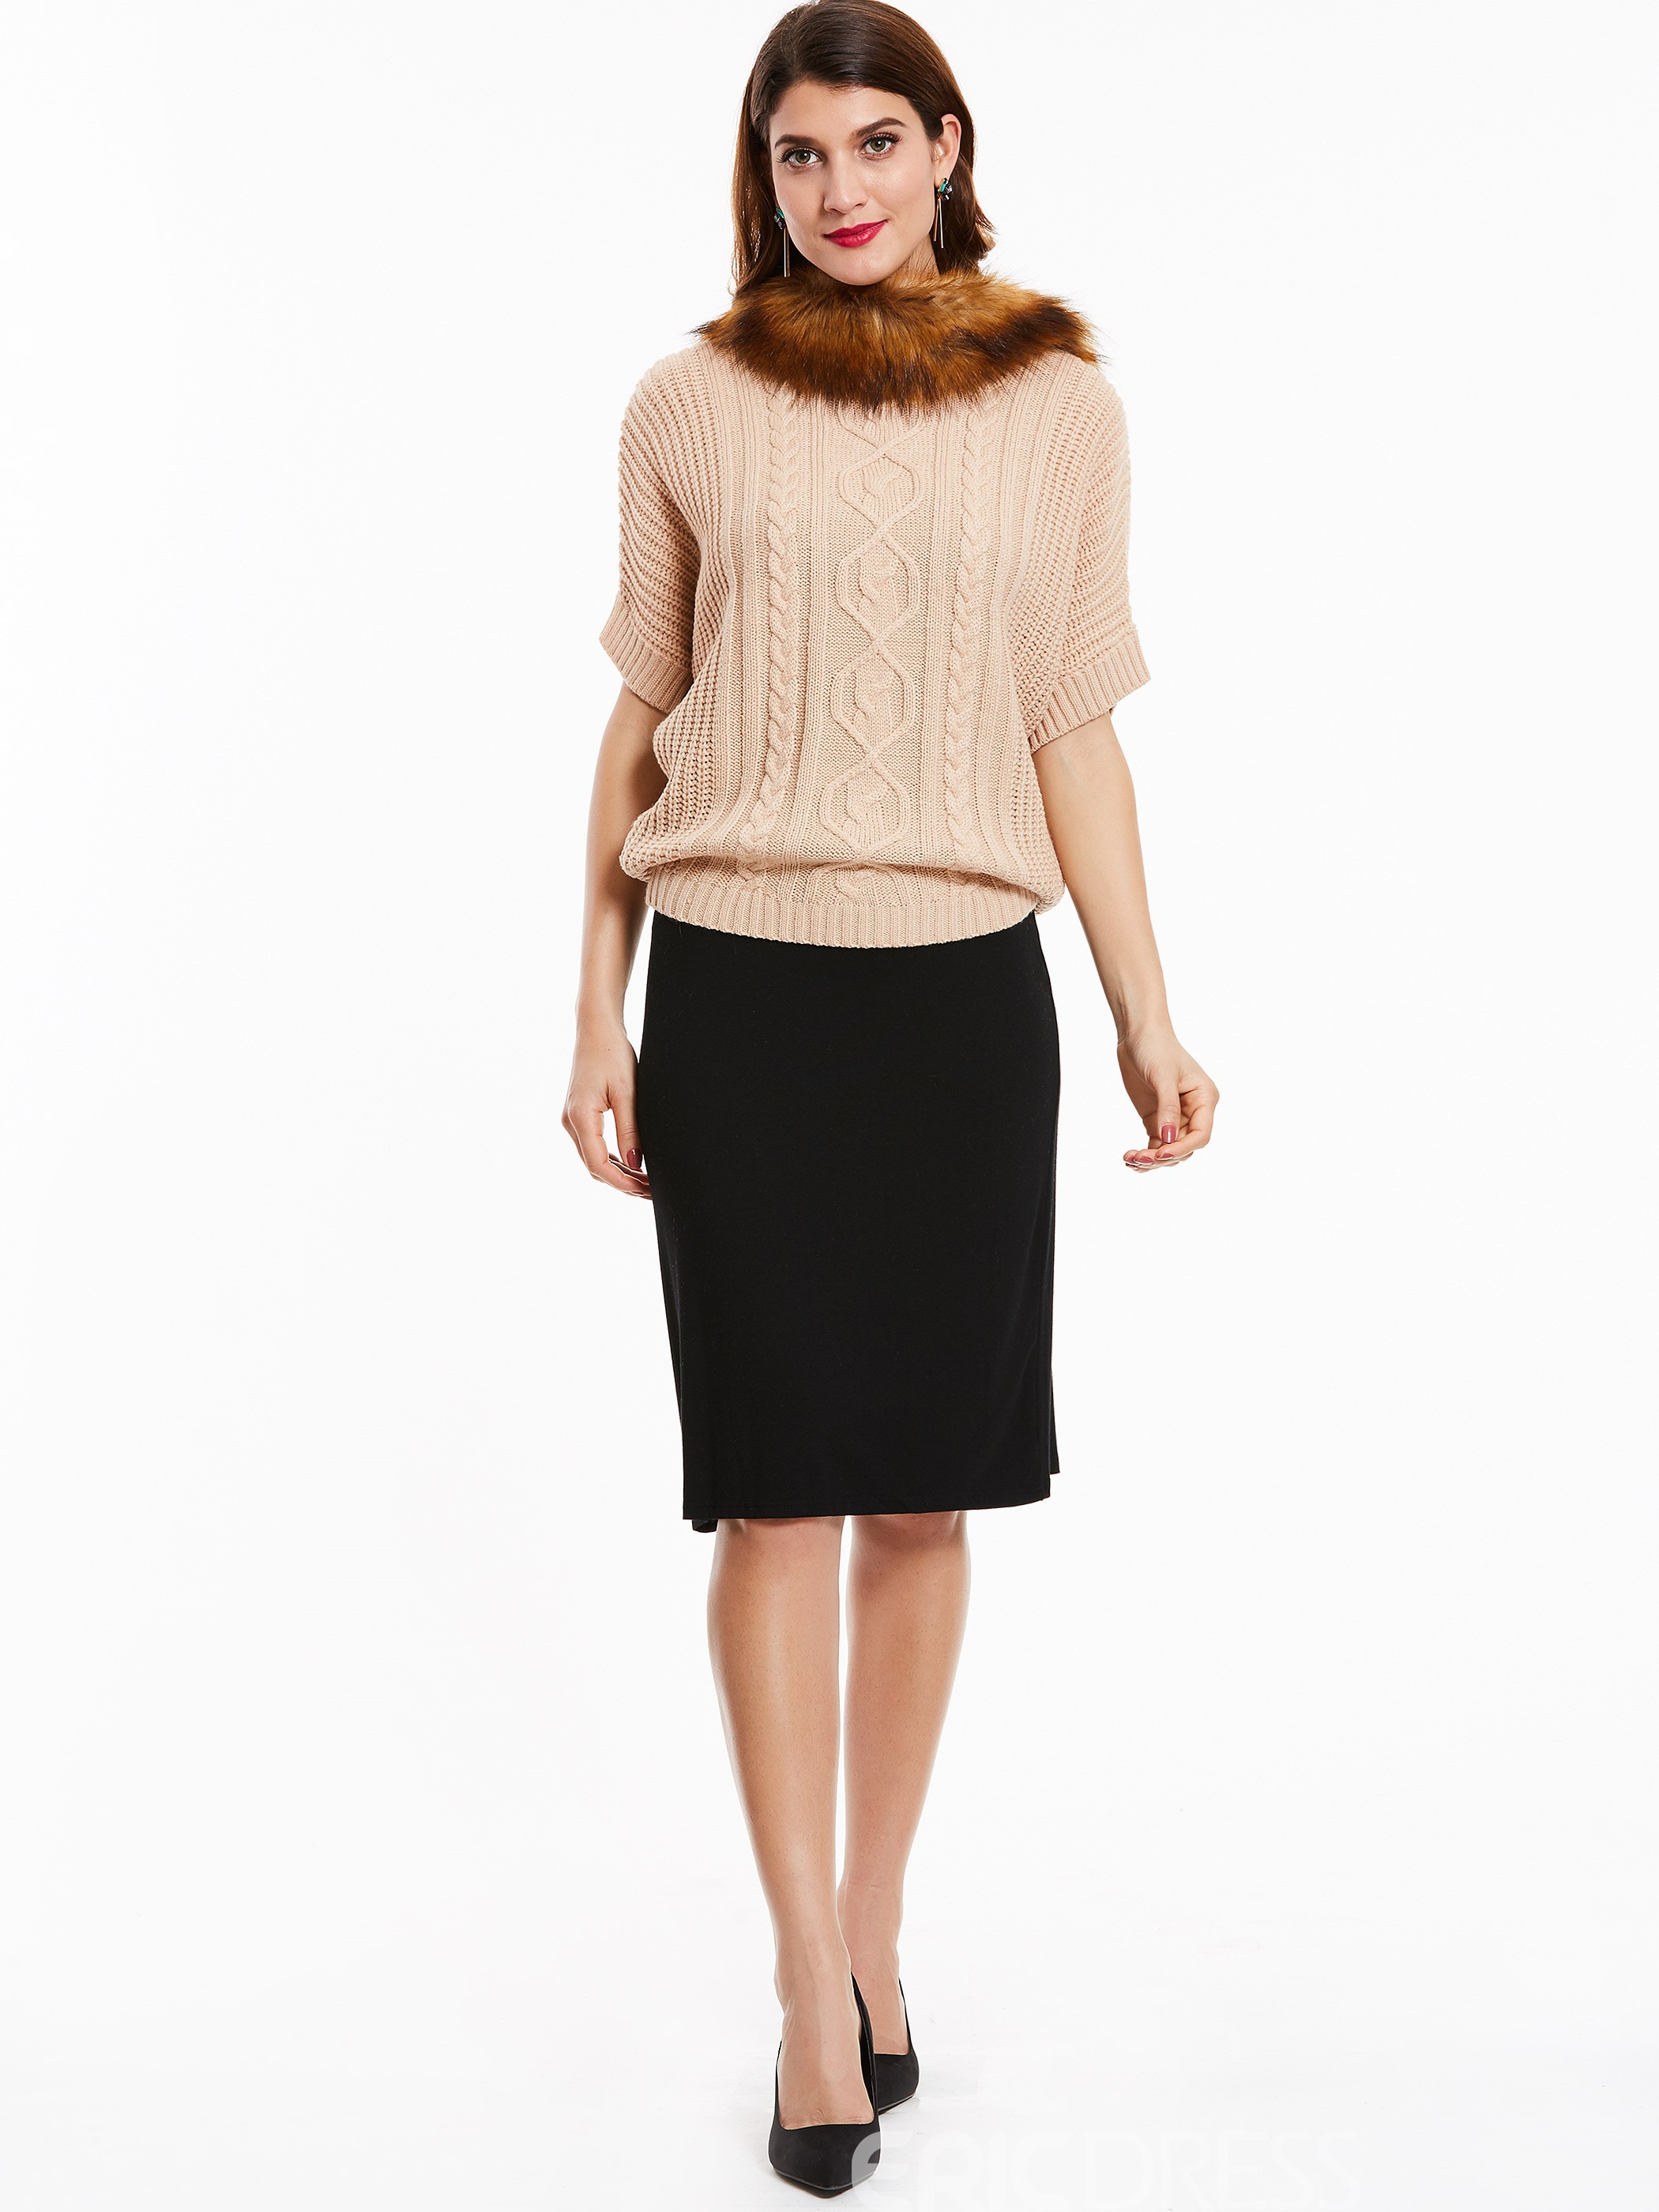 Ericdress Fur Collar Twist Pattern Knitwear